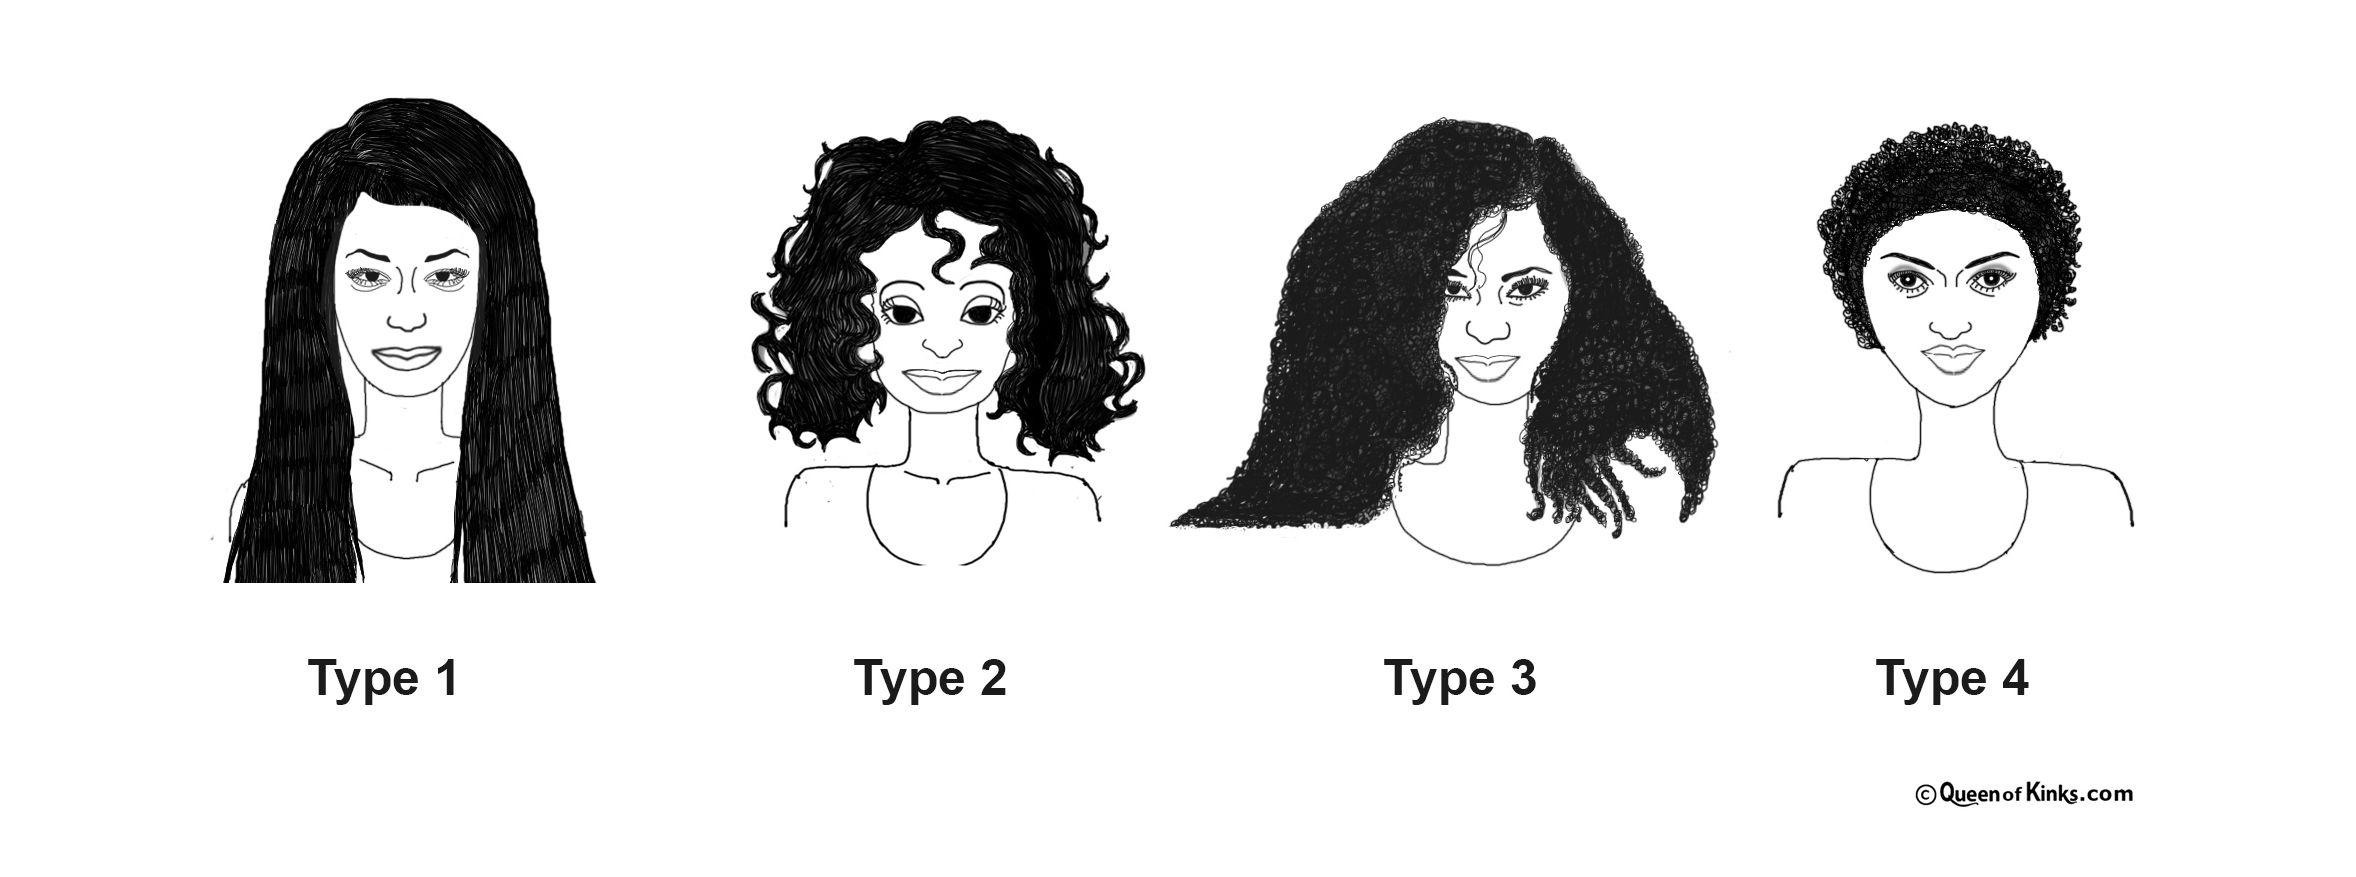 Type 1 Hairstyles: Type 1 Is Completely Straight Hair O It Has No Subsets